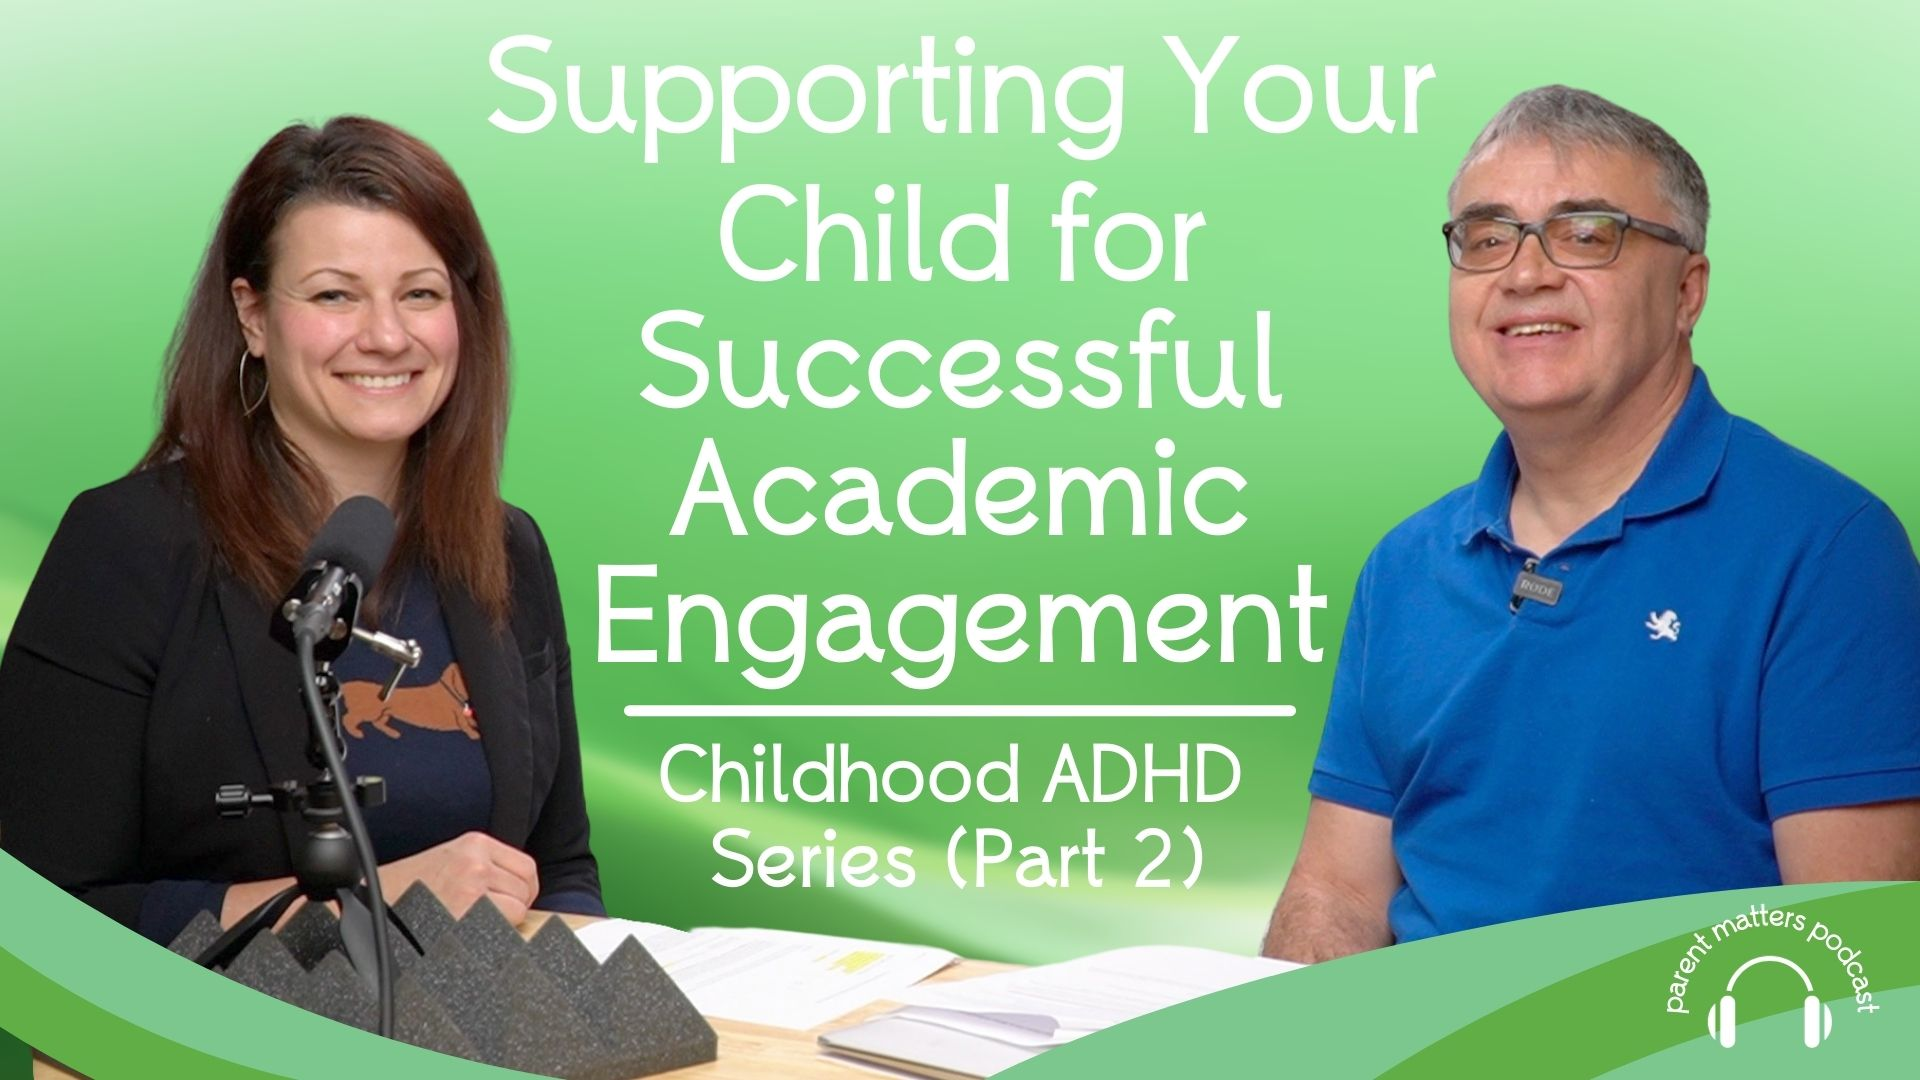 Supporting Your Child for Successful Academic Engagement: Childhood ADHD Series - Part 2